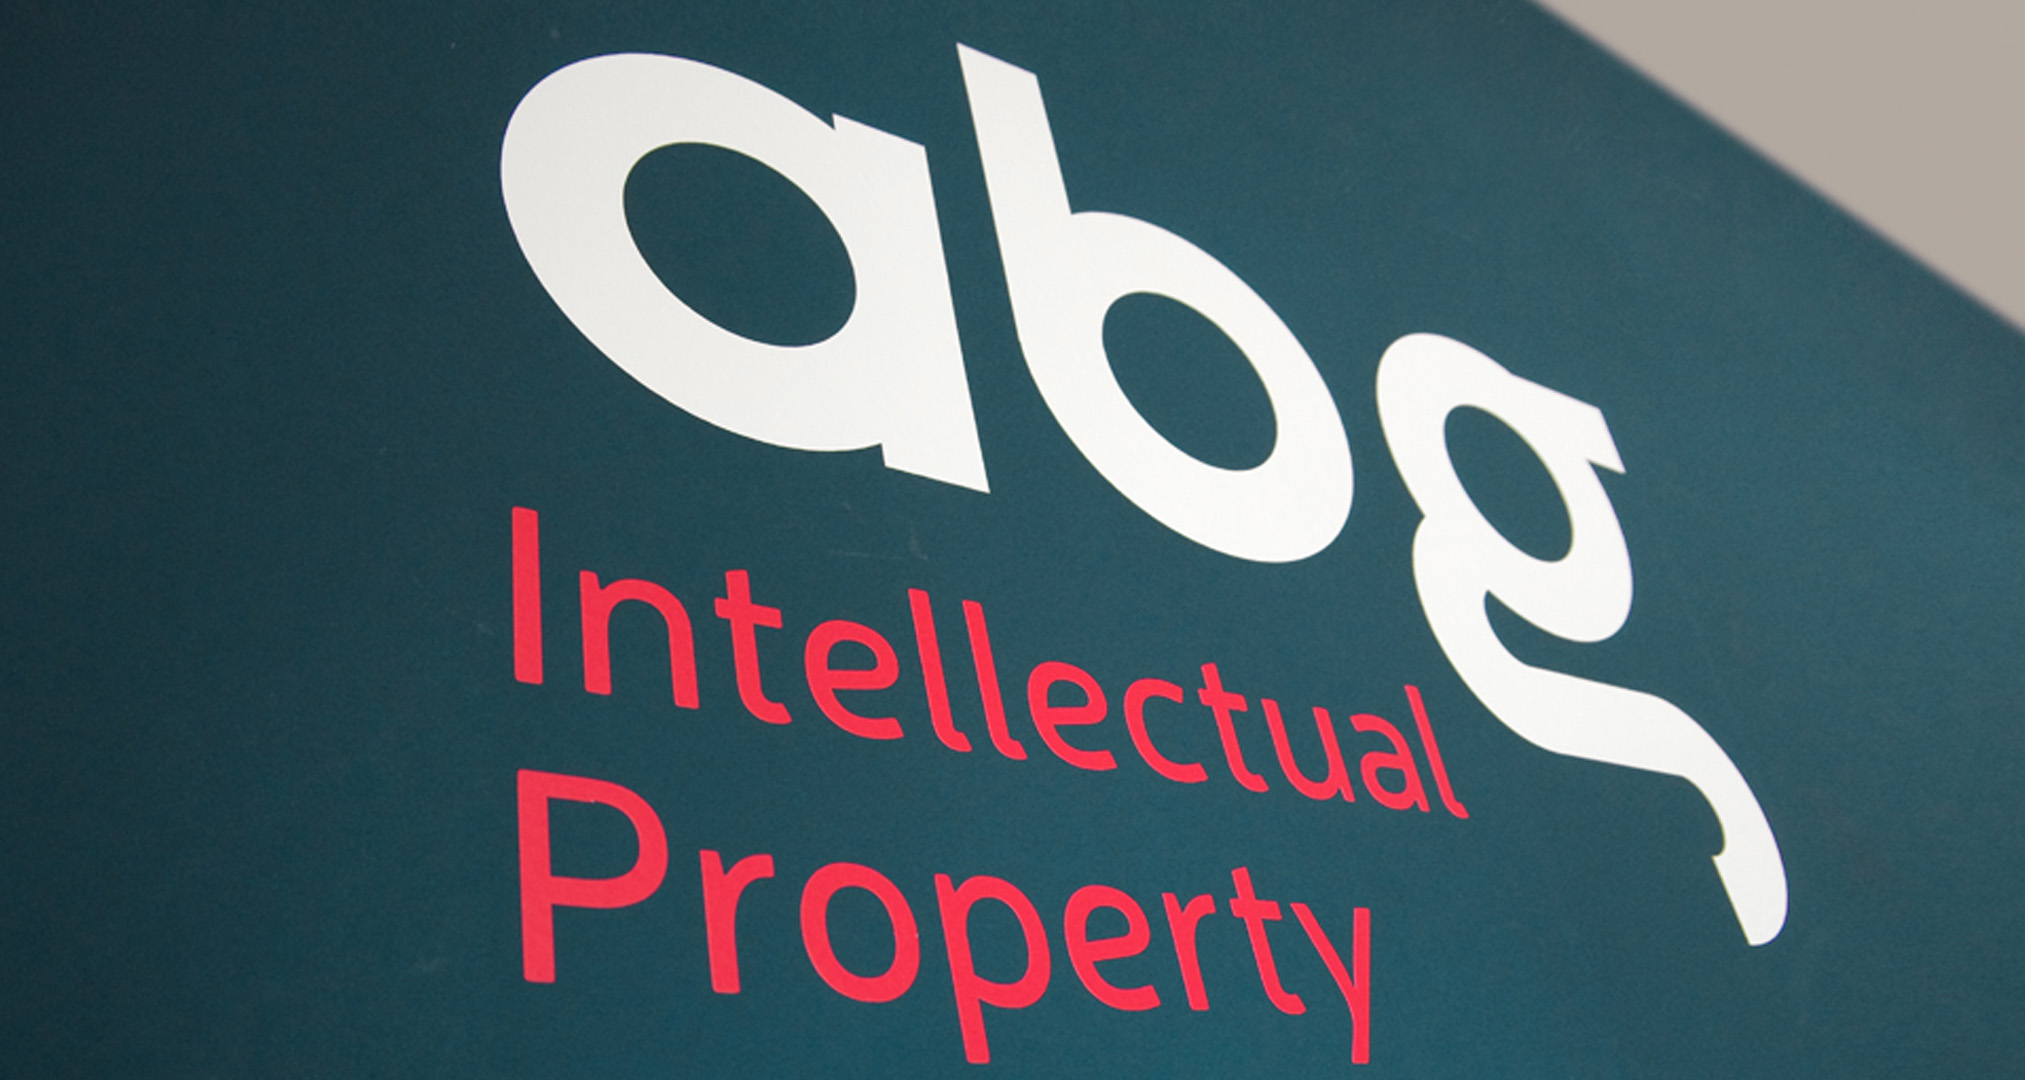 ABG Intellectual Property